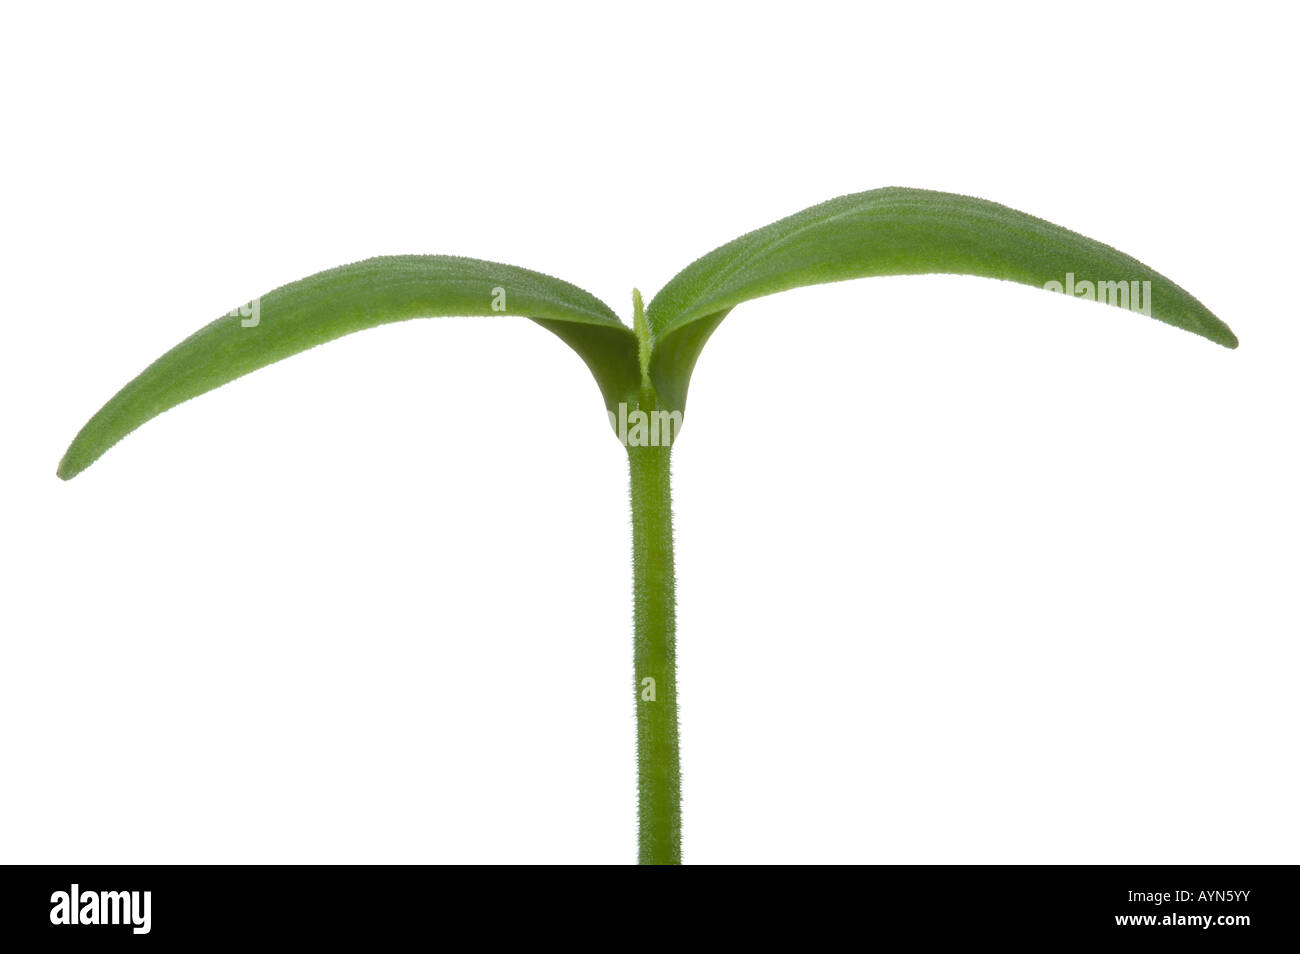 Macro shot of a young plant seedling with two leaves Isolated on a white background Stock Photo